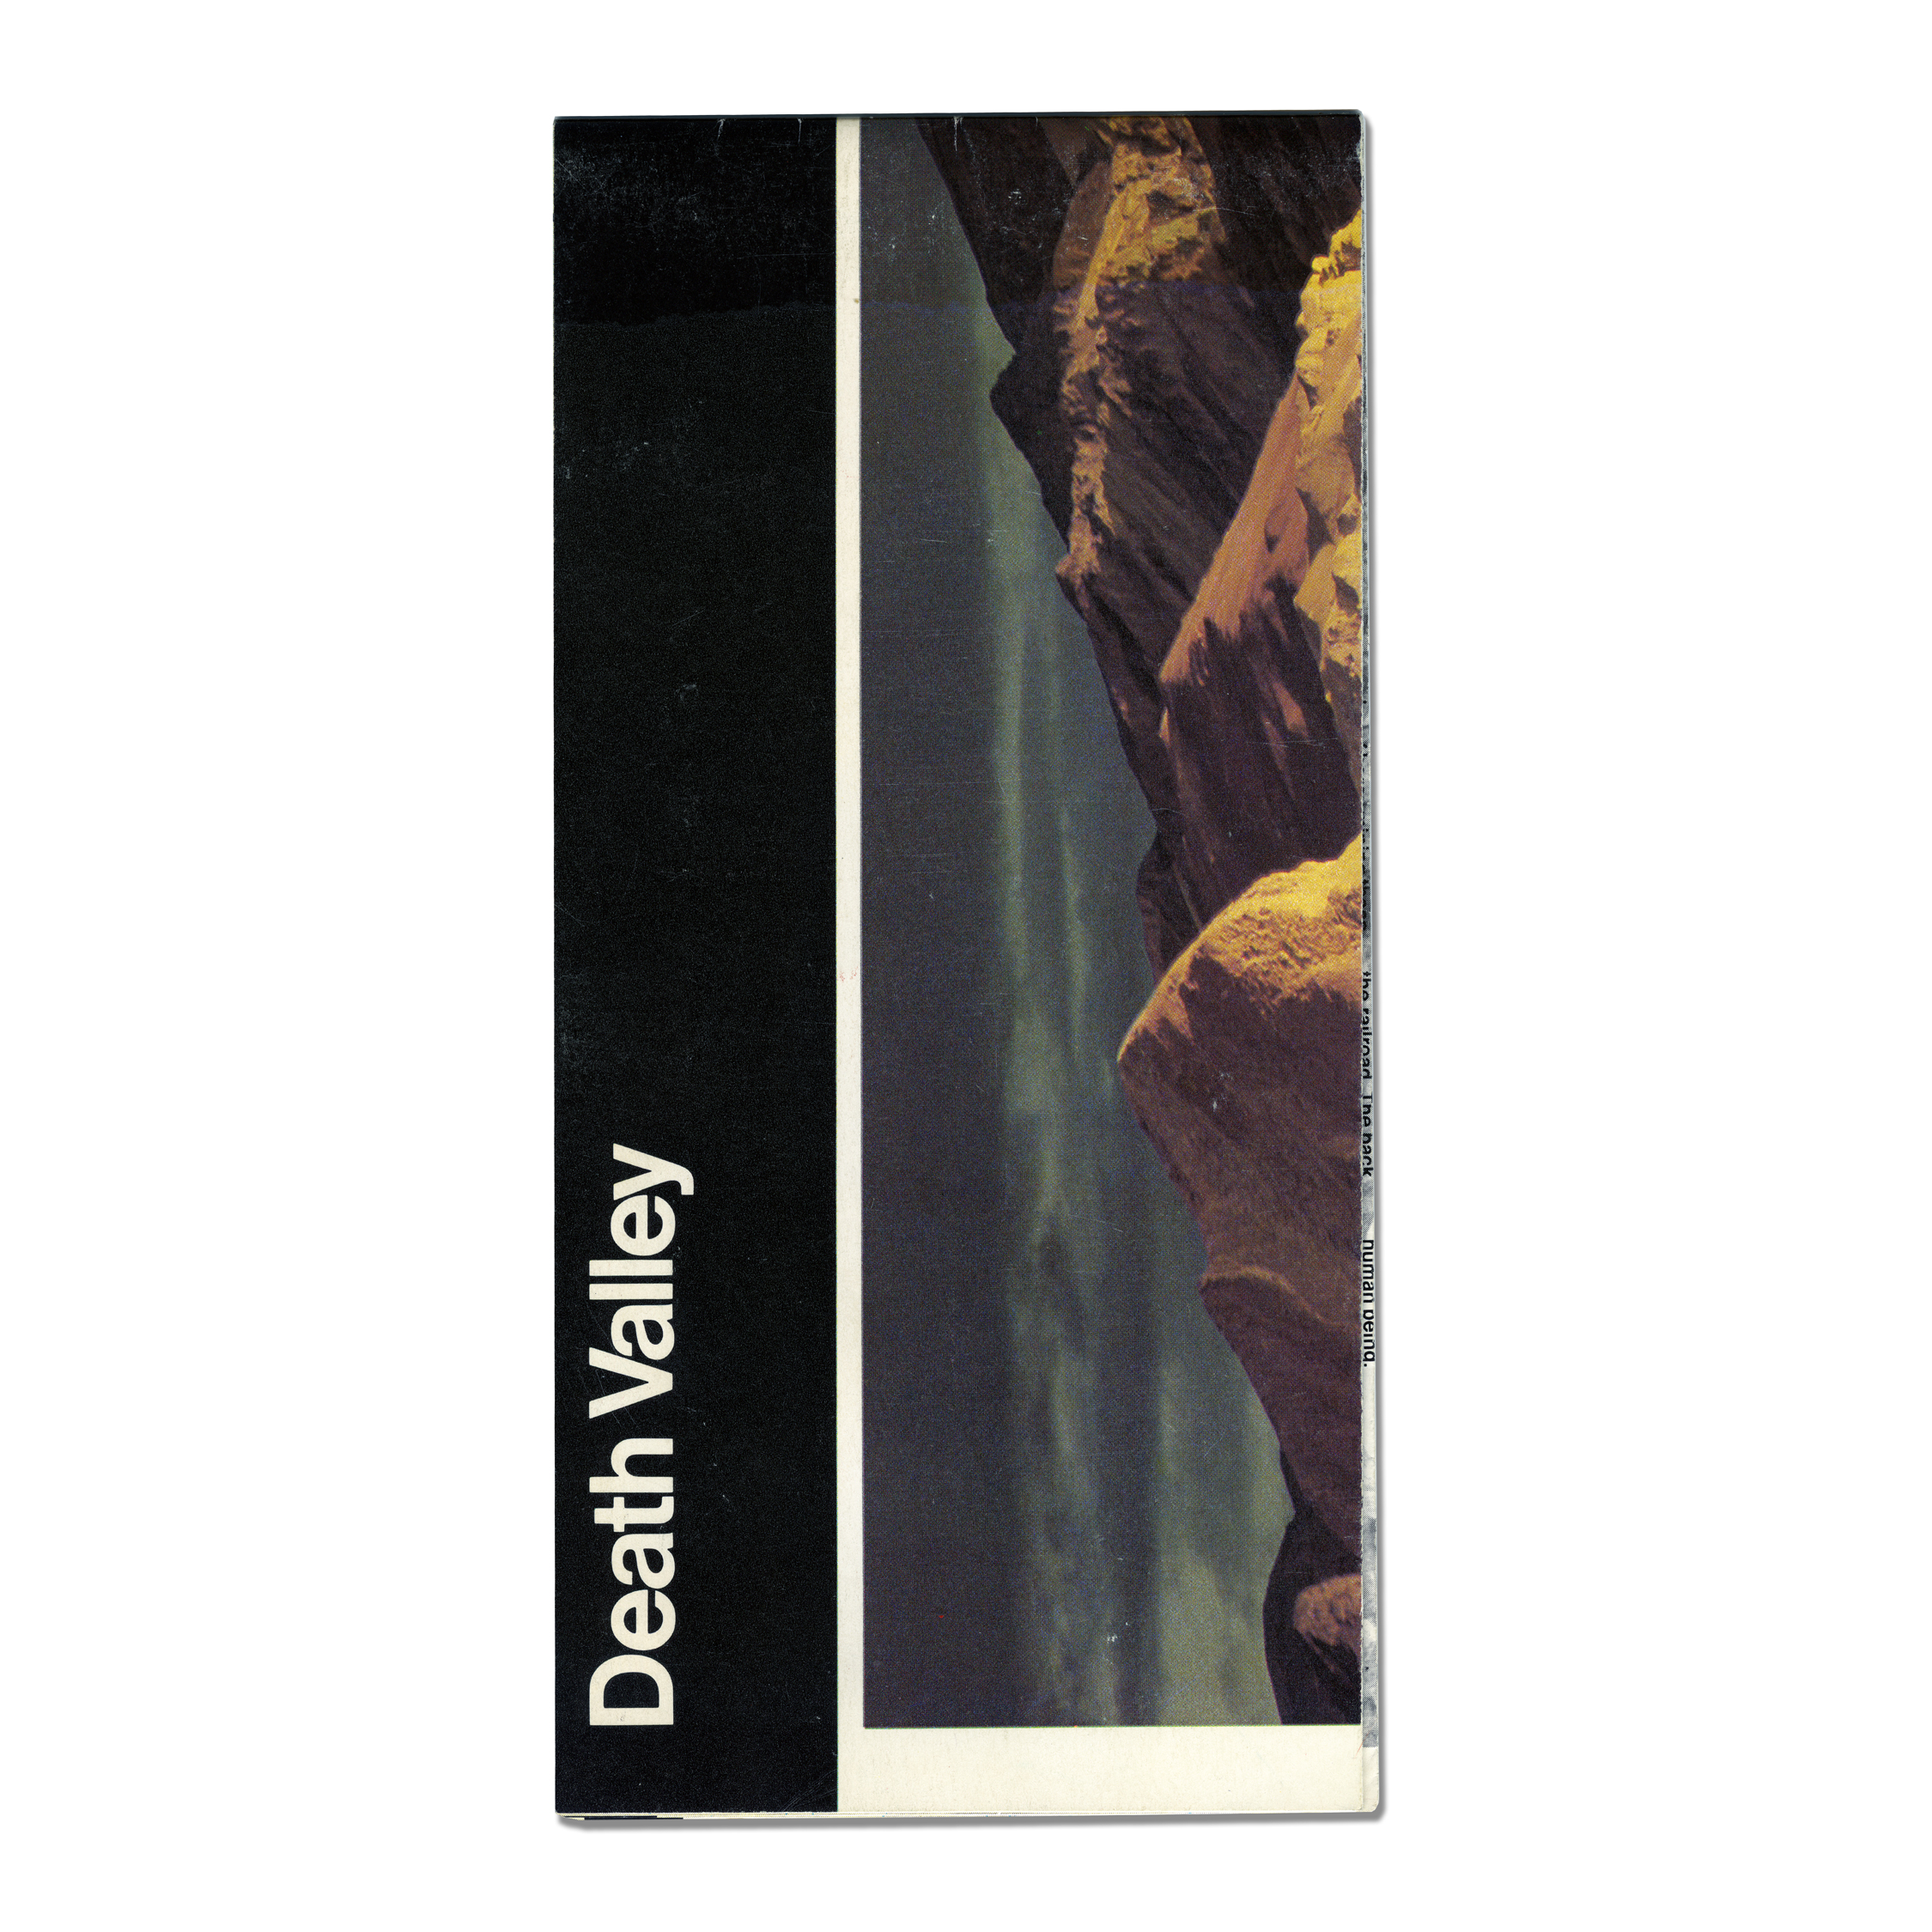 1988_death_valley_national_park_brochure.jpg